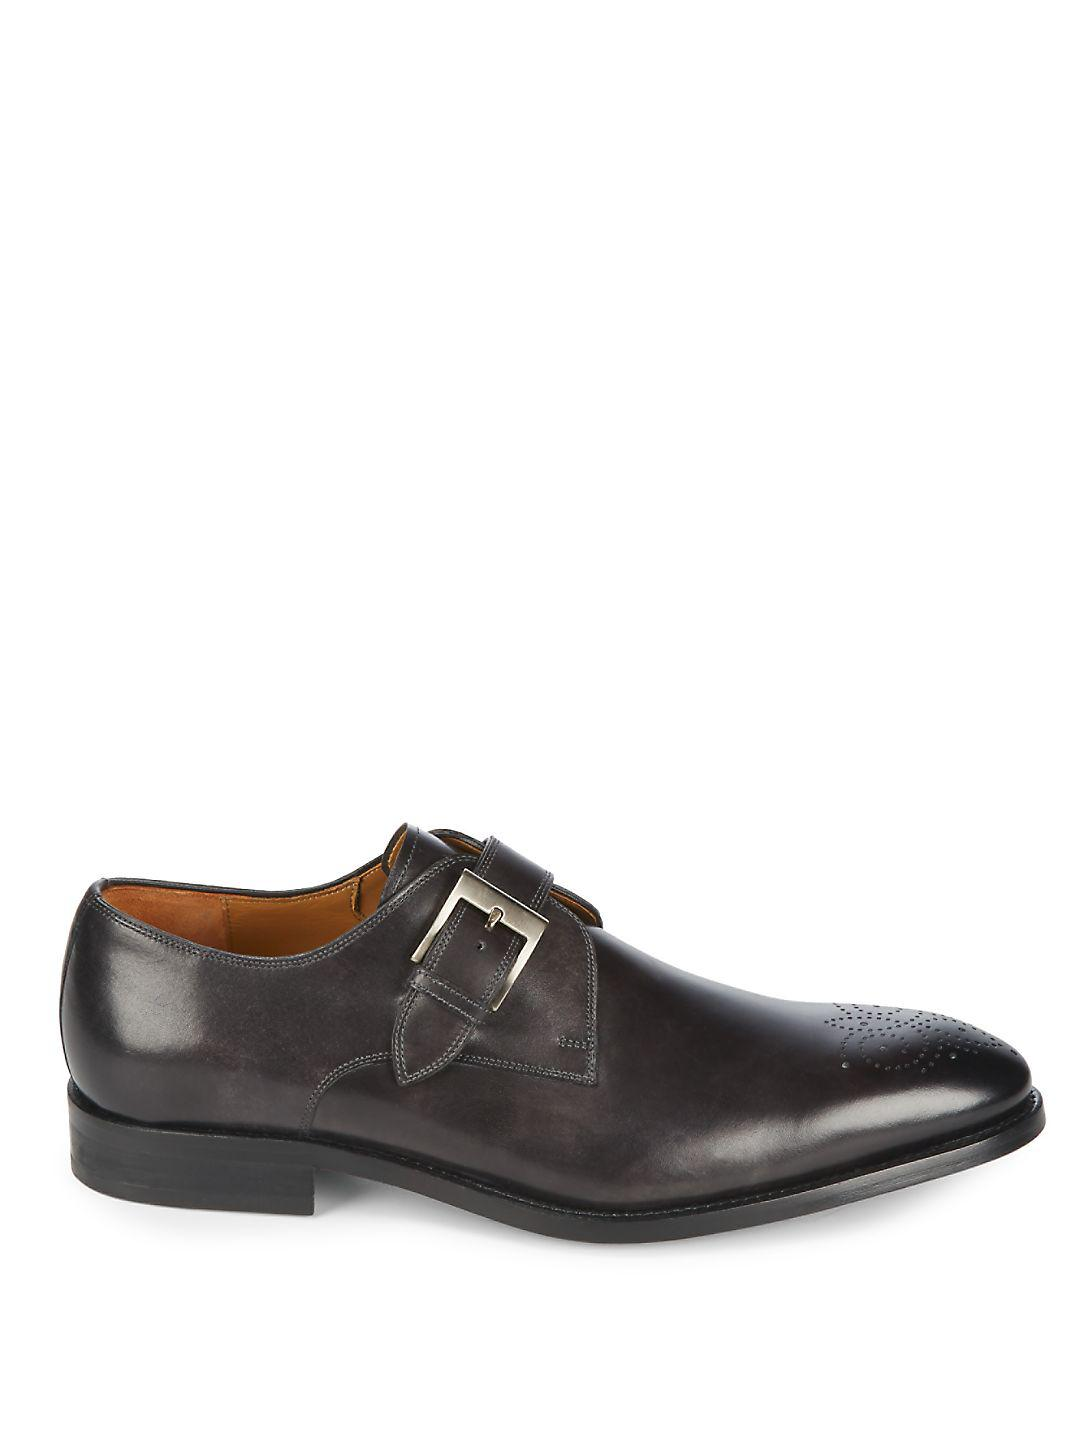 Magnanni Single Monk-strap Leather Derbys in Black for Men